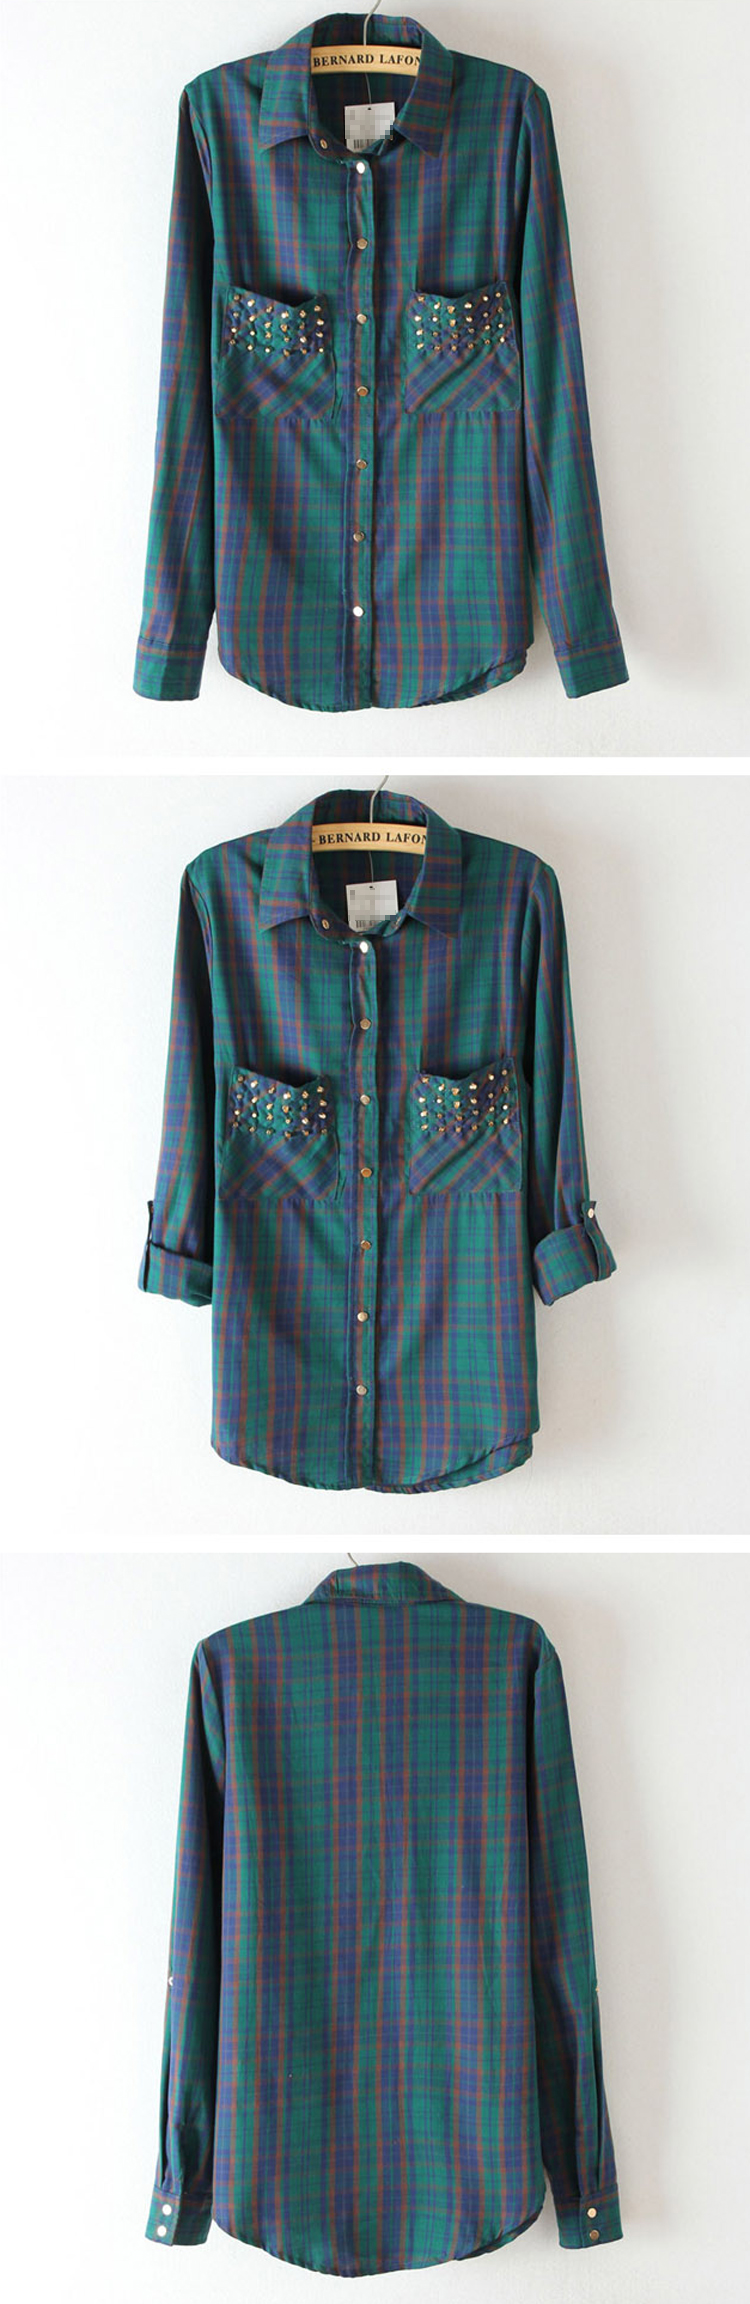 Inlaid Metal Rivets Pocket Plaid Shirt$49